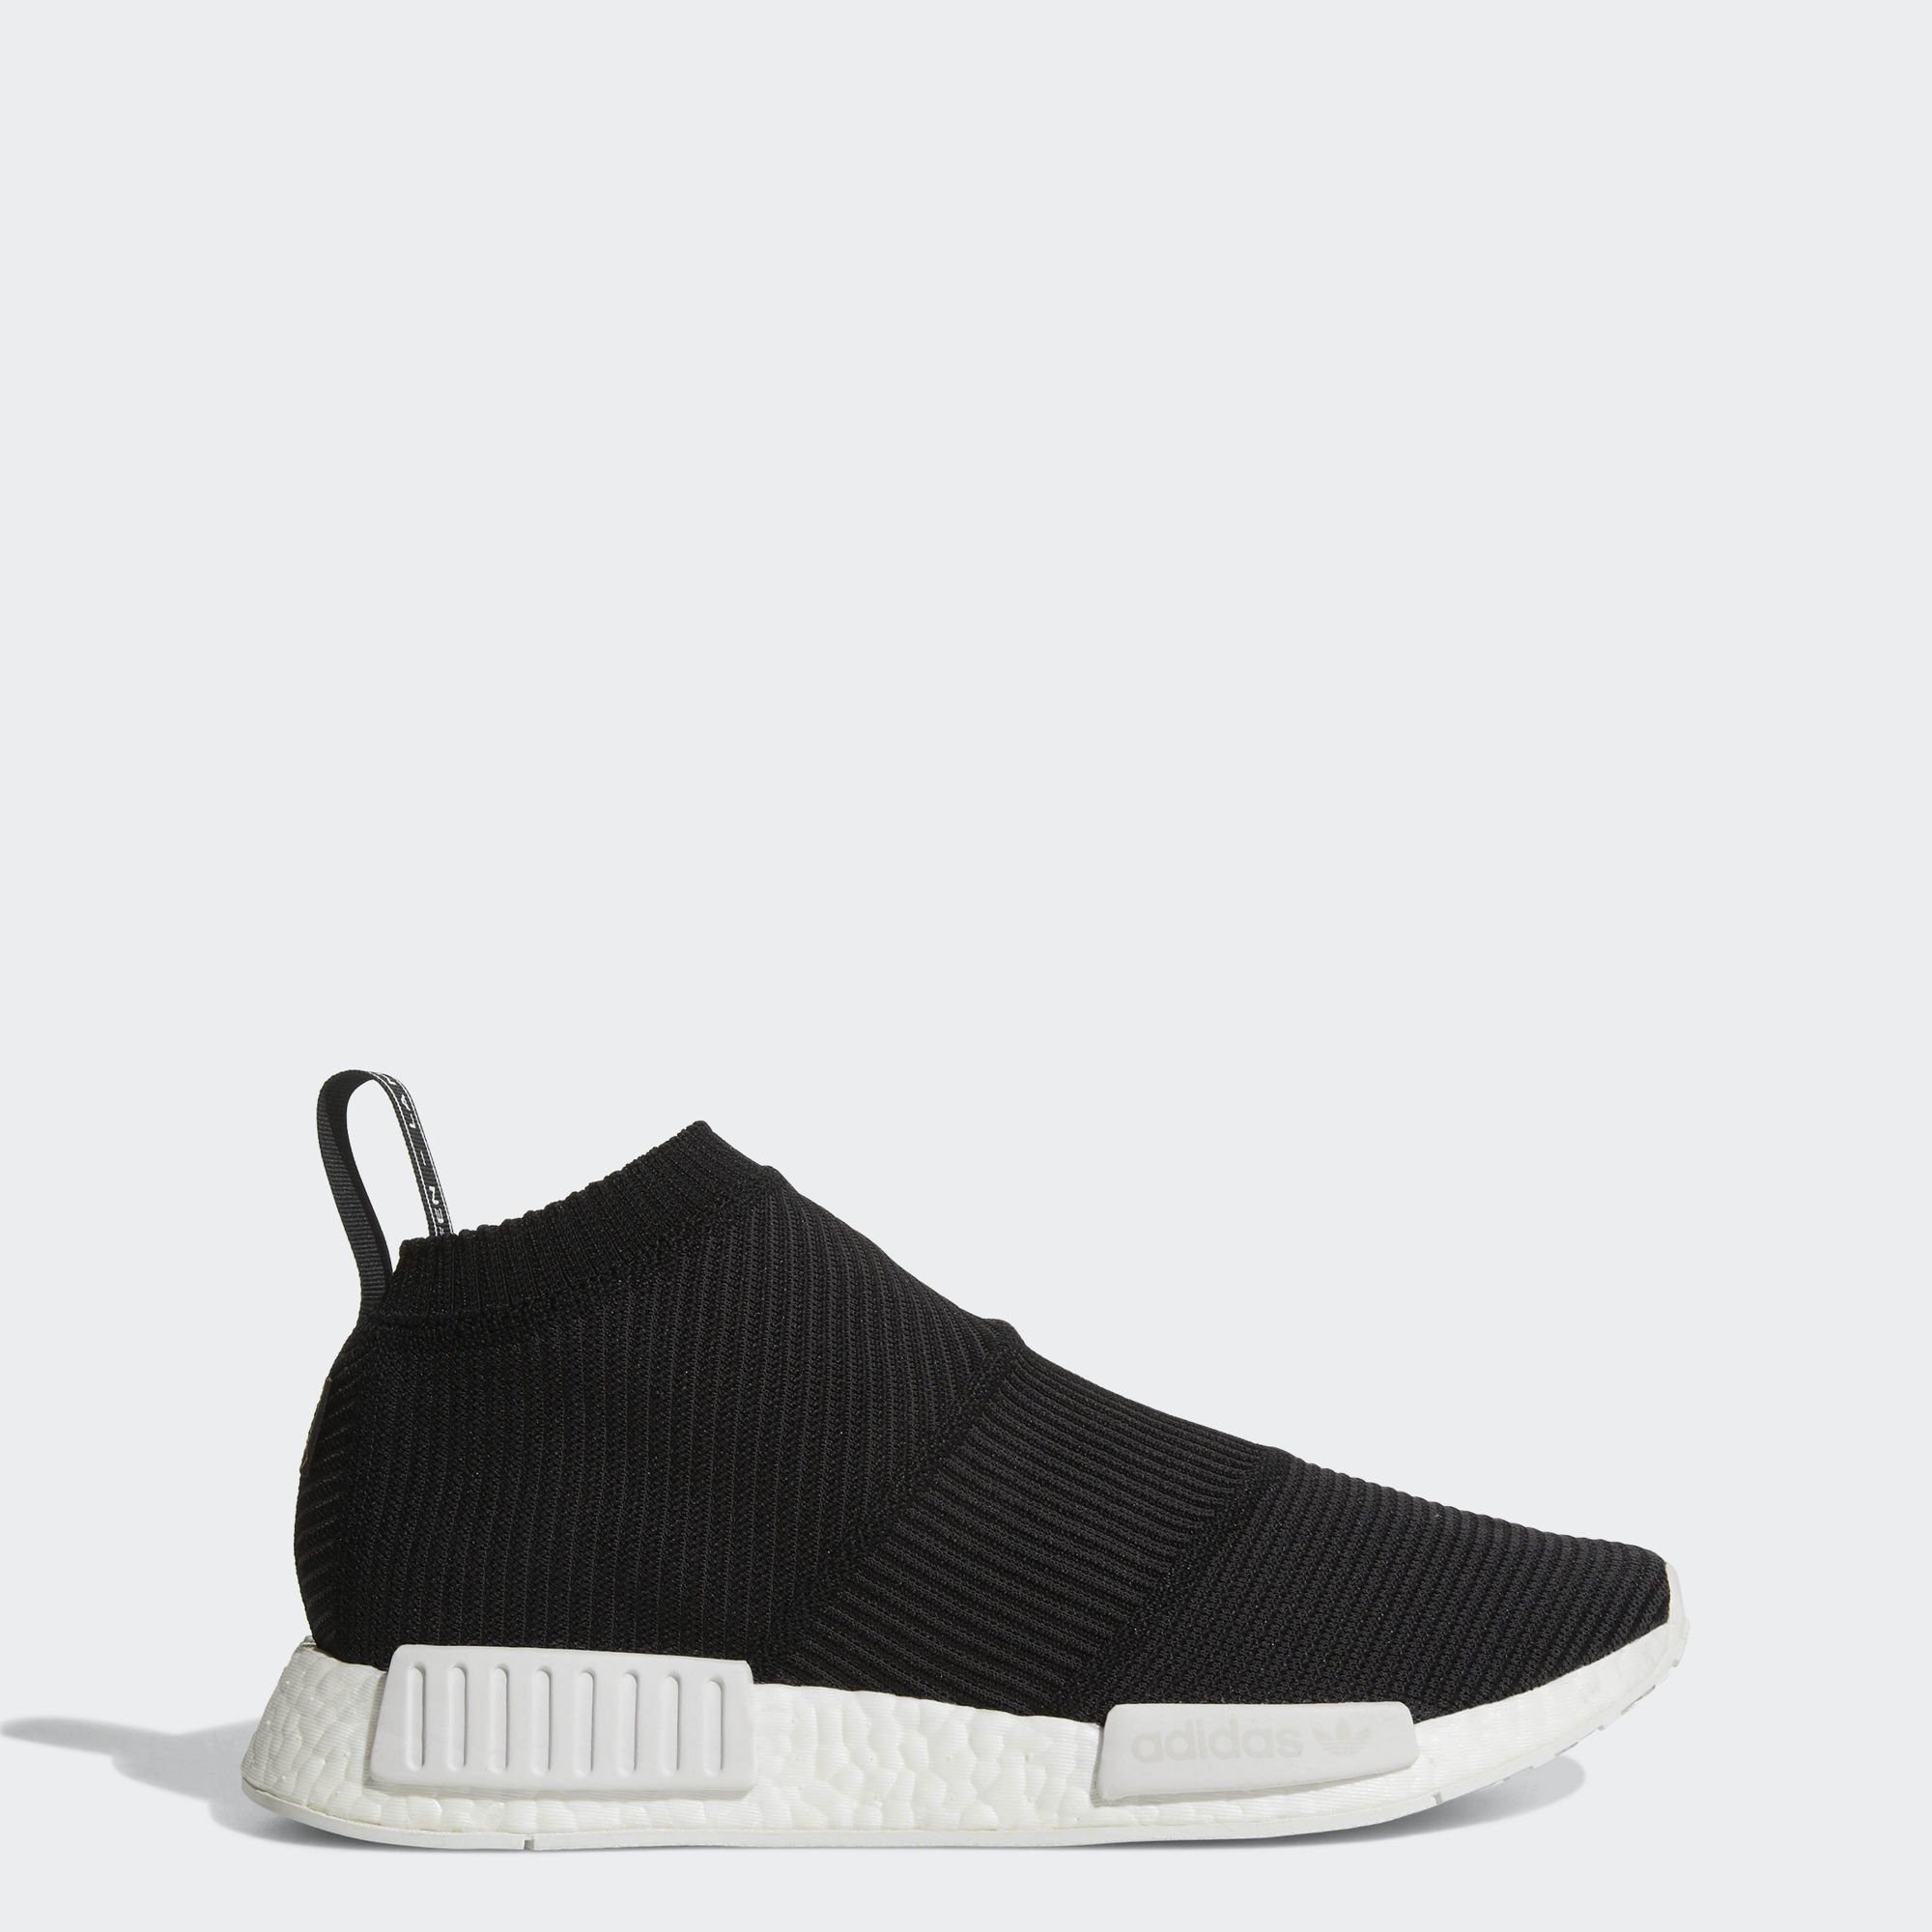 Adidas NMD CS1 BY9405